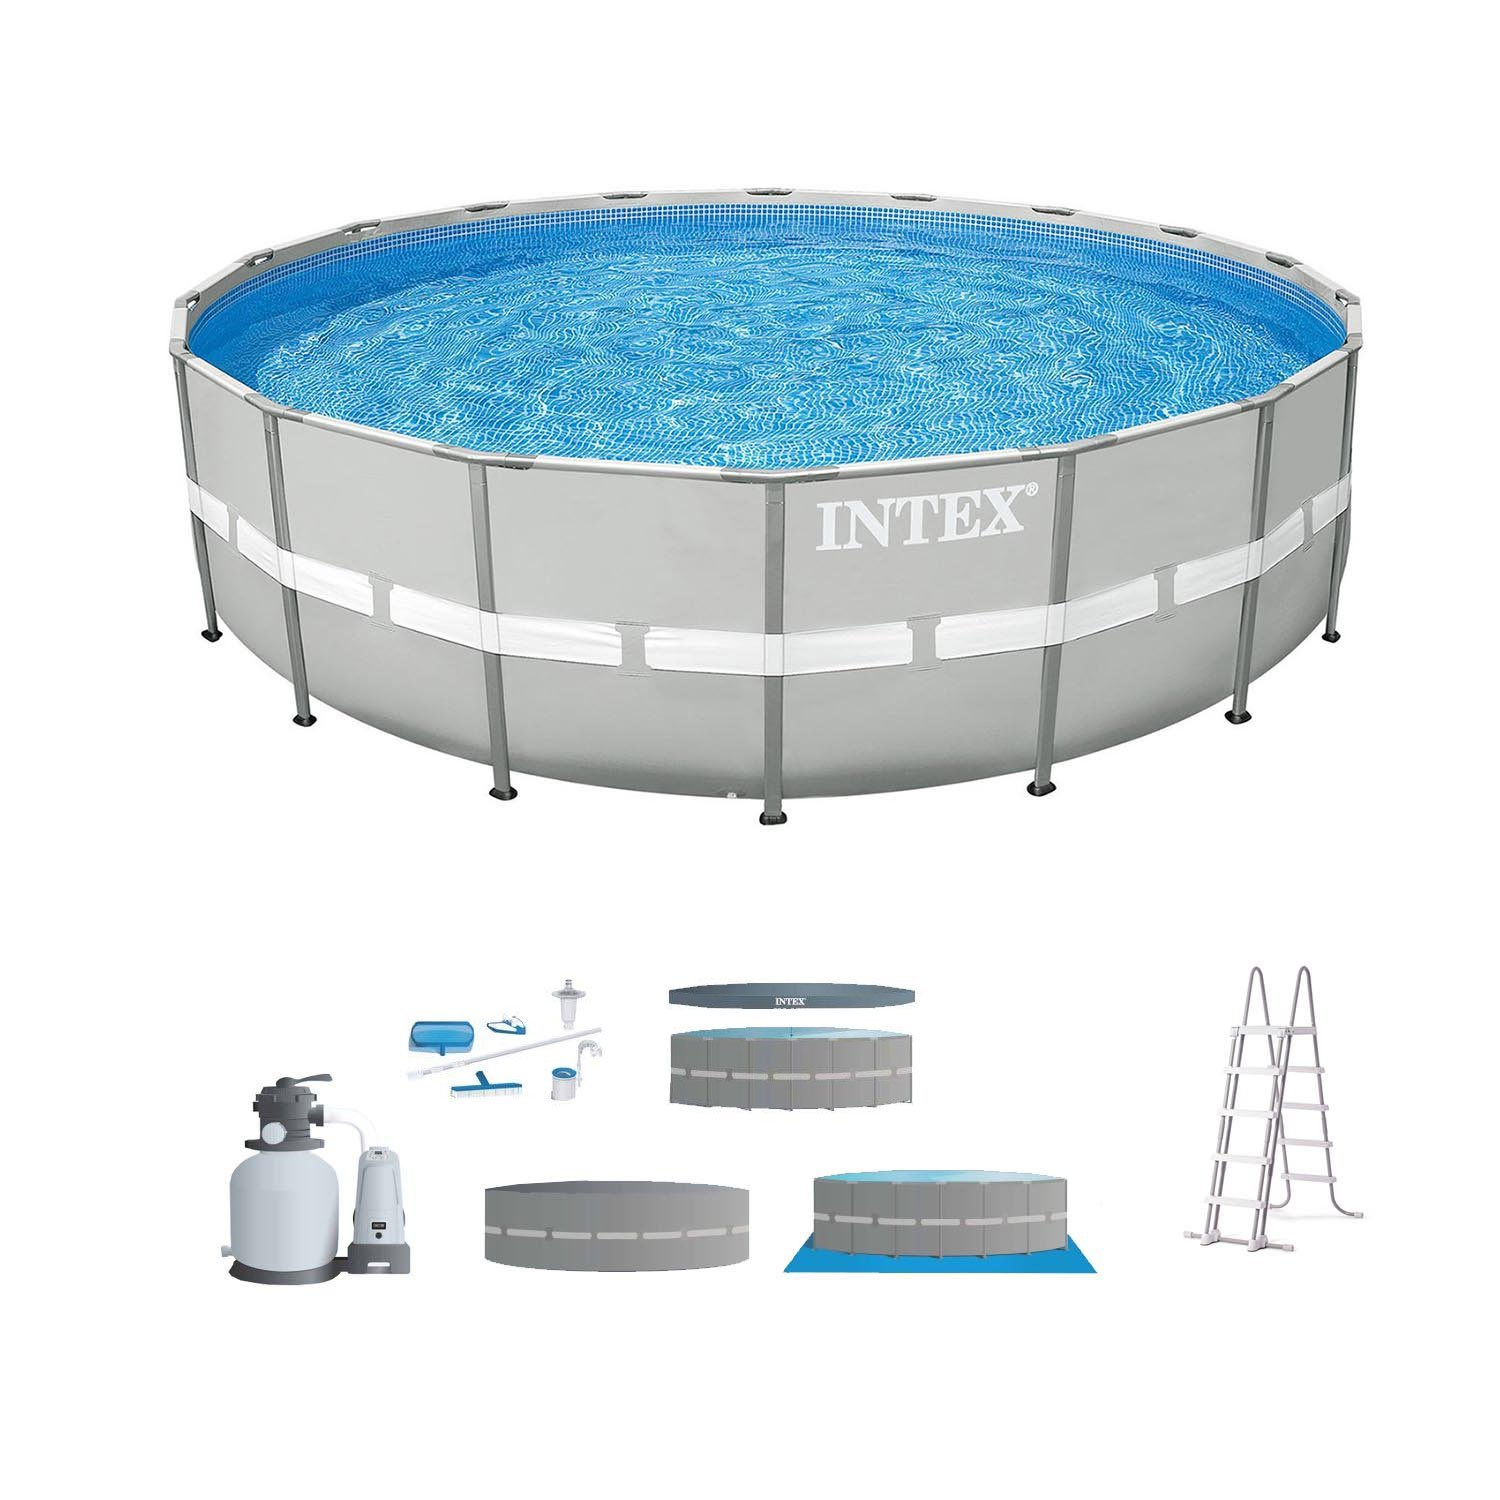 Intex 24 39 x 52 steel ultra frame round above ground swimming pool set with pump pool chemical for Intex above ground swimming pool